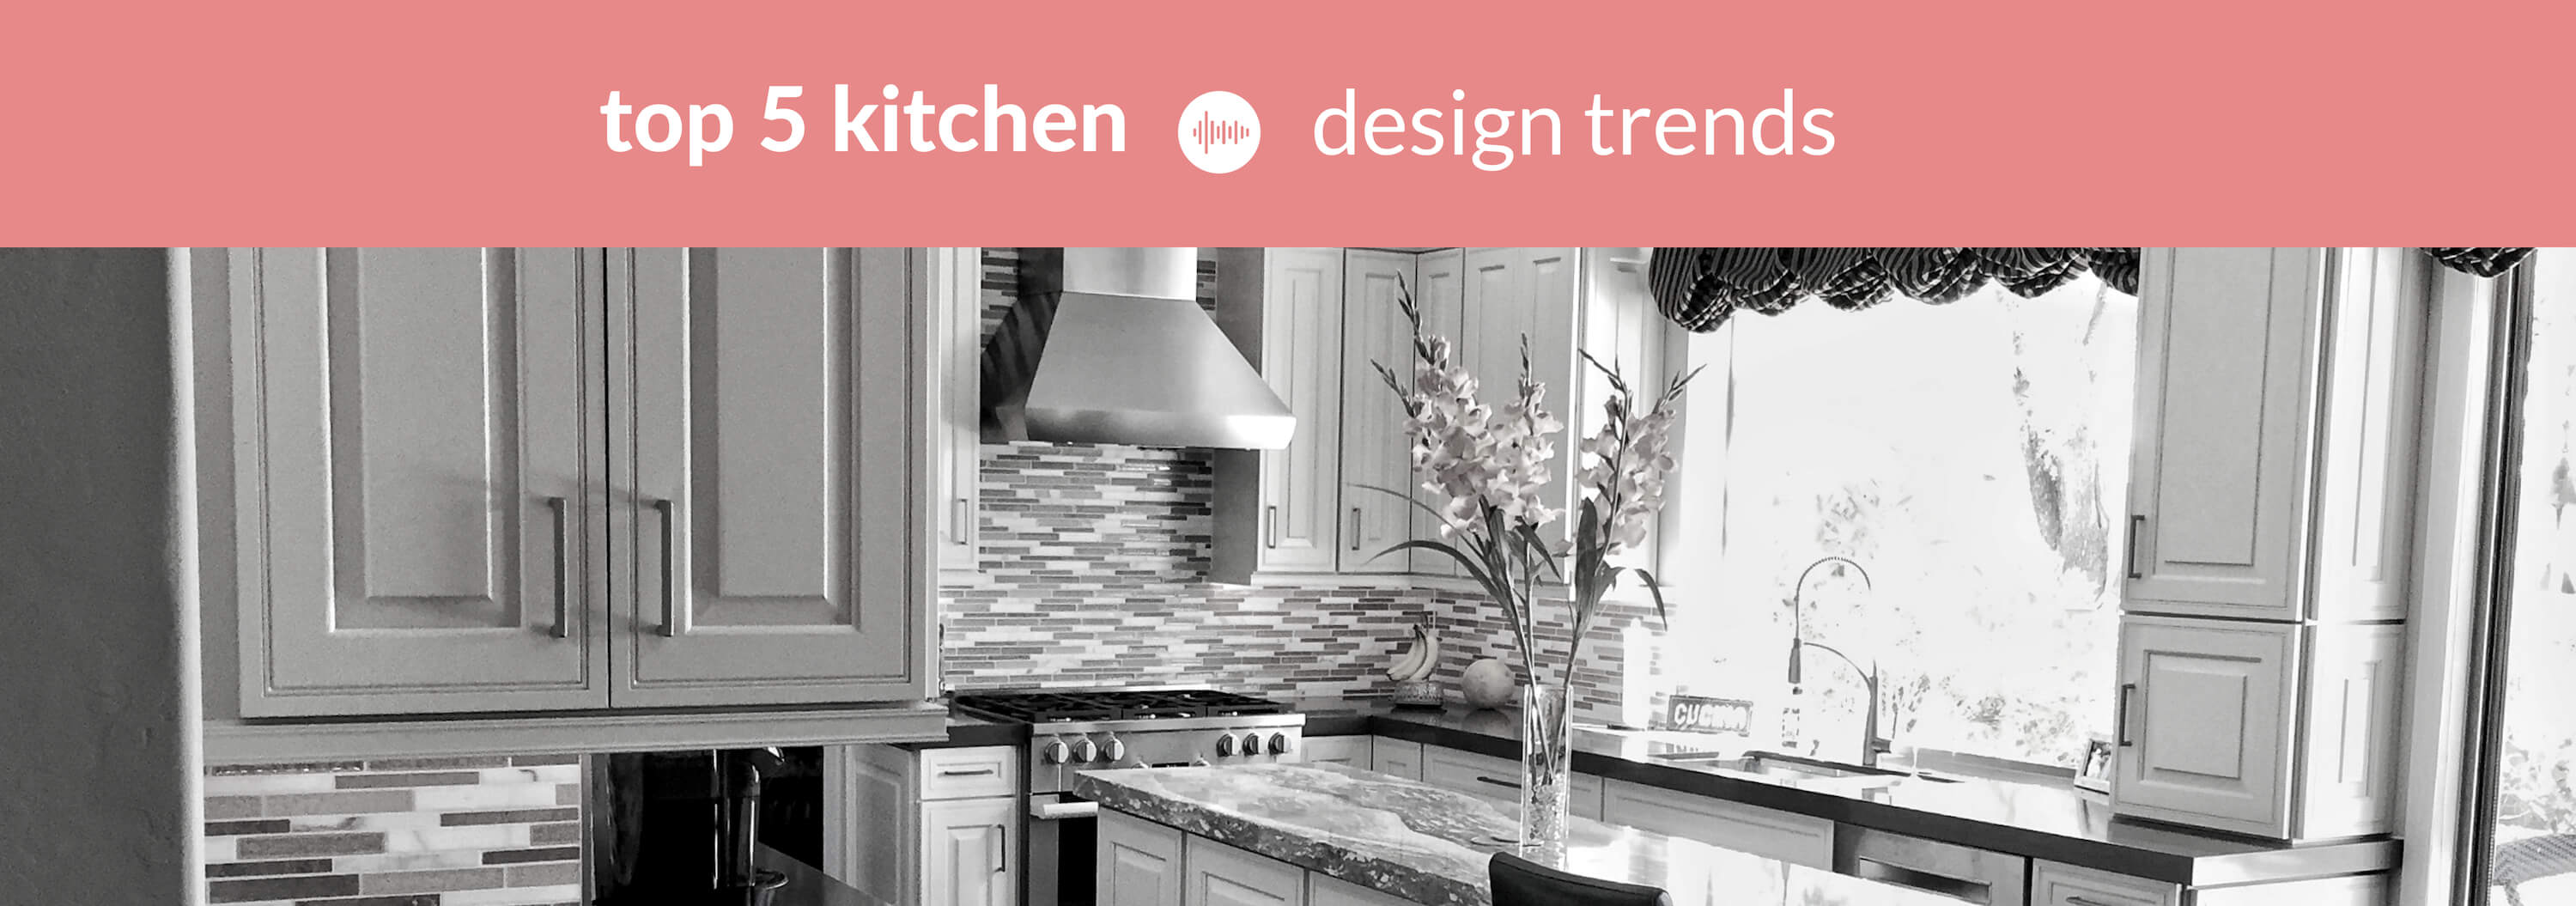 Top 5 Kitchen Design Trends For 2019 Custom Kitchen Design